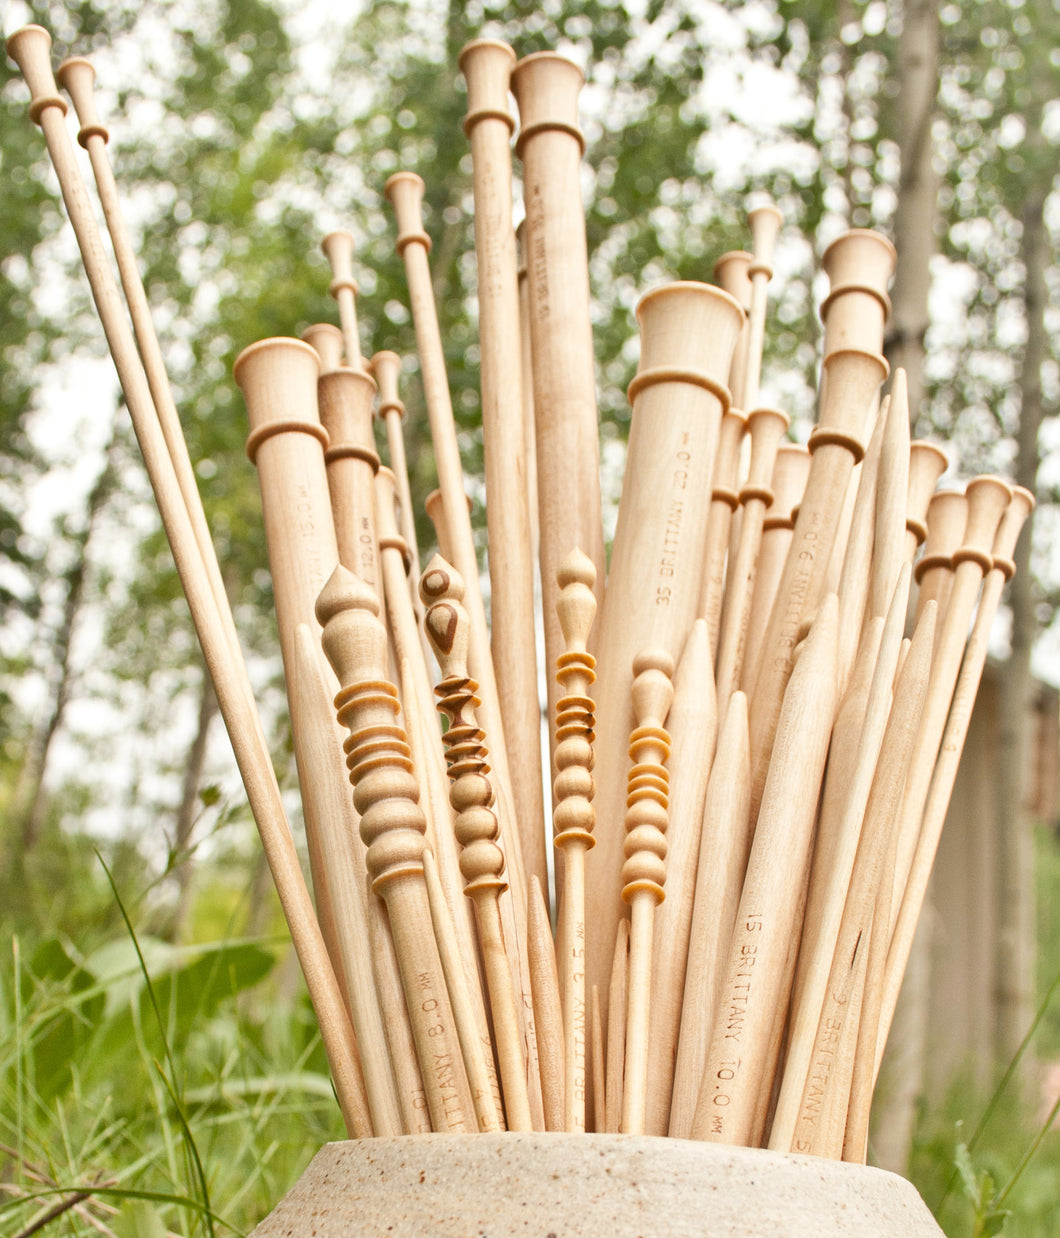 Brittany Knitting Needles & Crochet Hooks